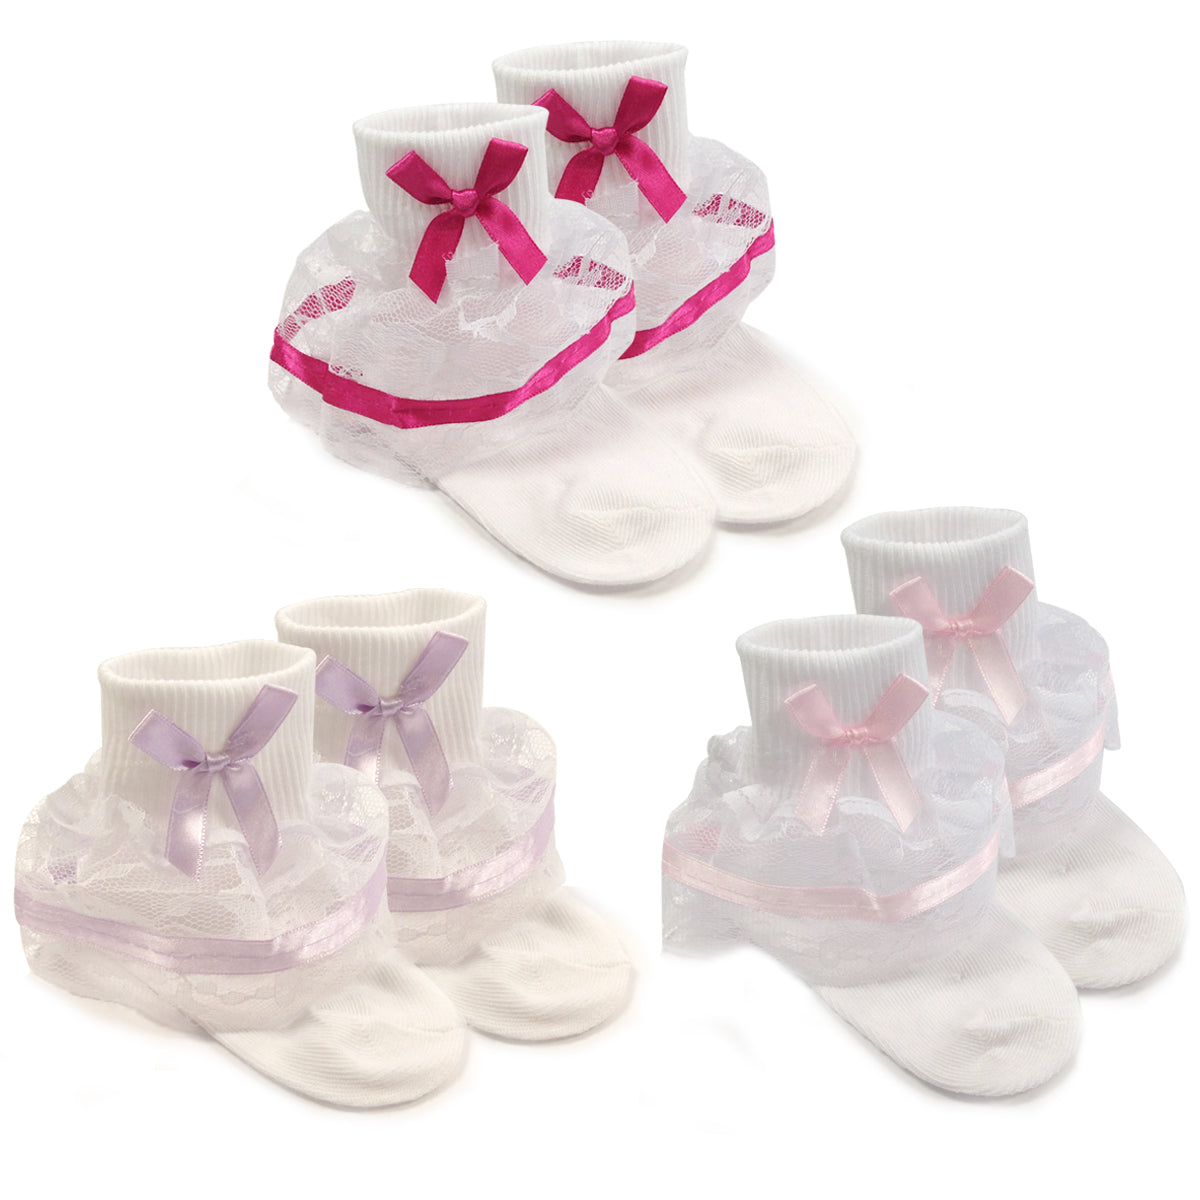 Wrapables Lil Miss Bella Lace & Ribbon Ruffle Socks for Toddler Girl, Set of 3 (Size 4-6)